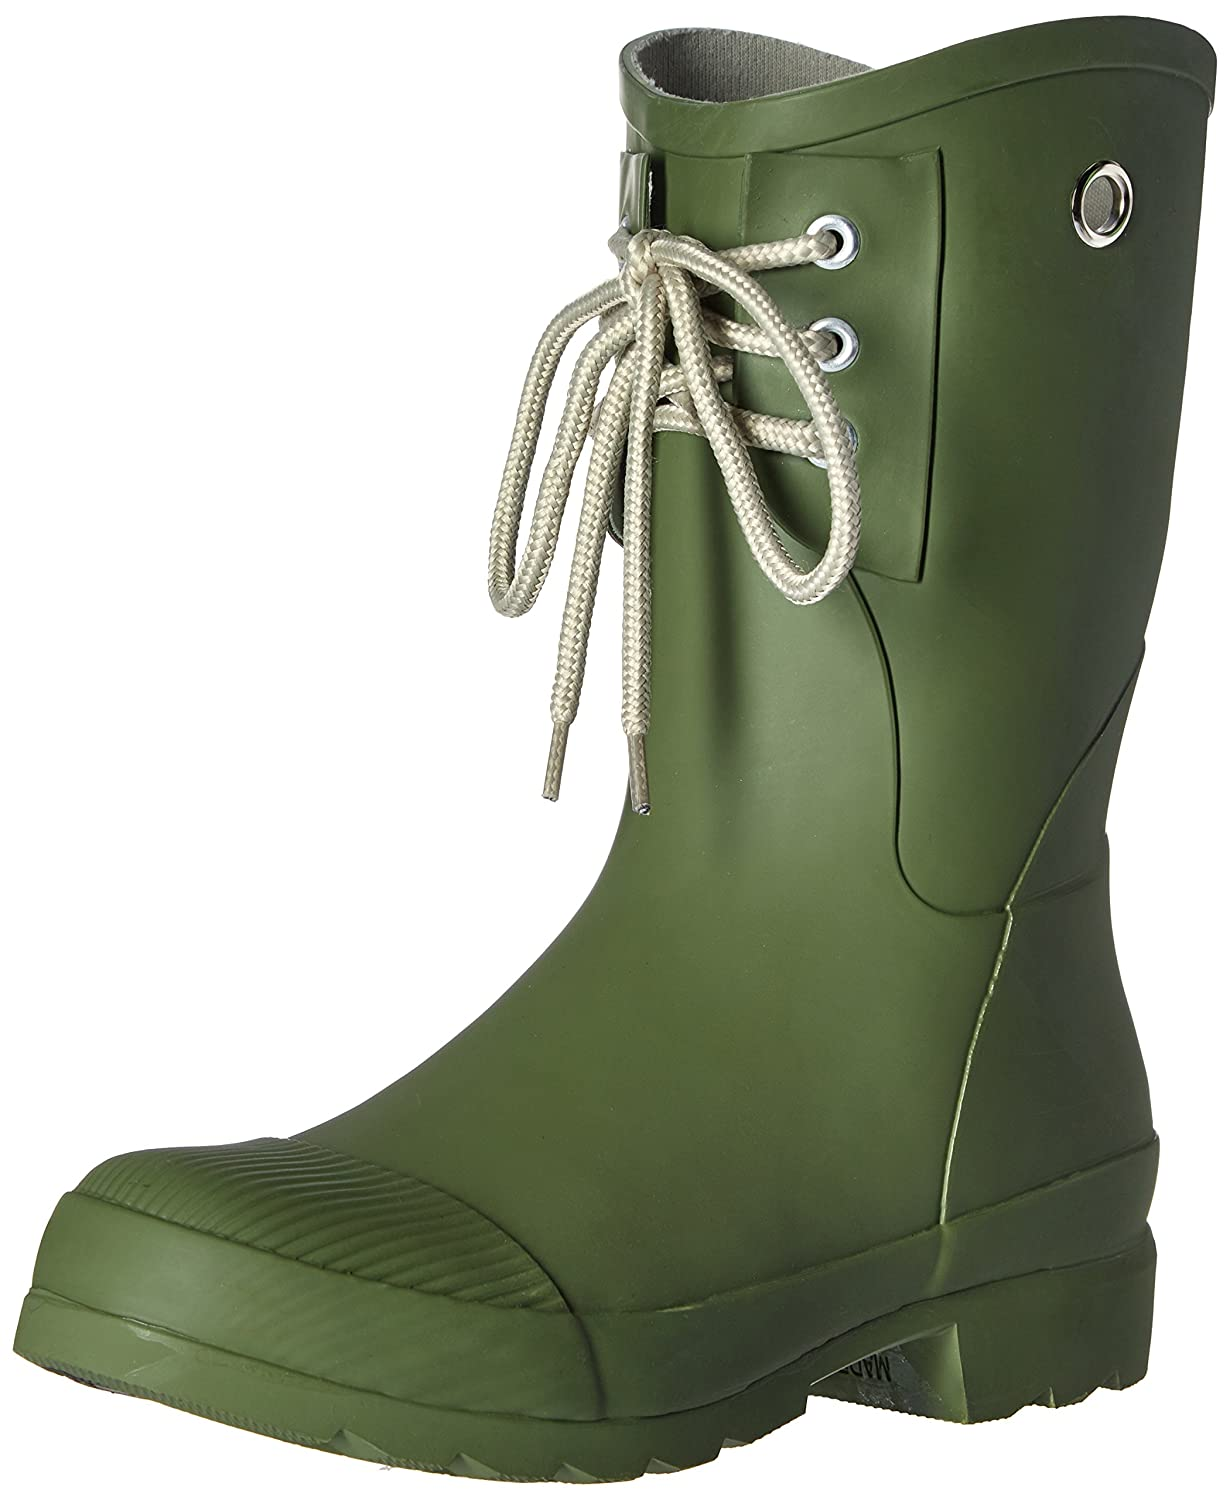 Nomad Women's Kelly B Rain Boot B0151IK6BI 11 B(M) US|Ivy